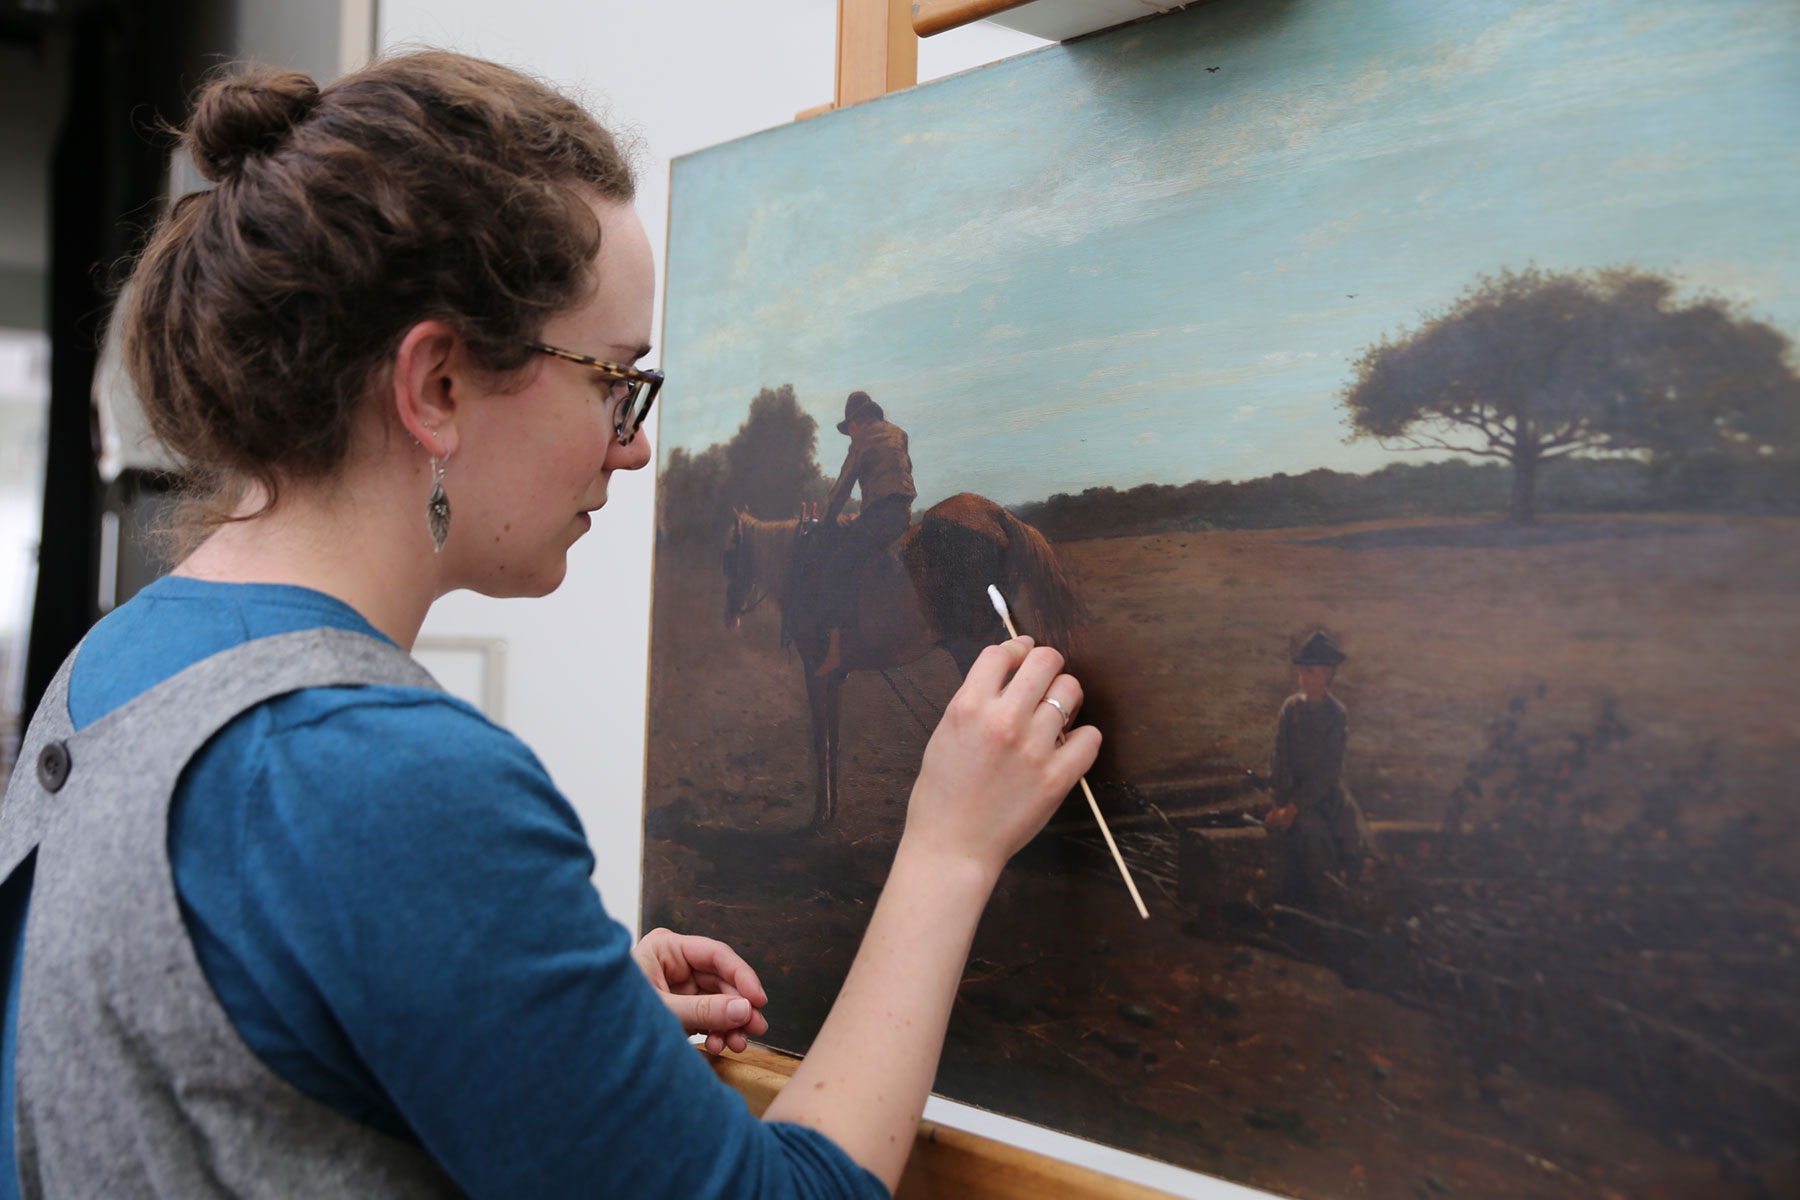 Schaffer uses a swab and solution to remove the varnish from the painting on the backside of the horse.